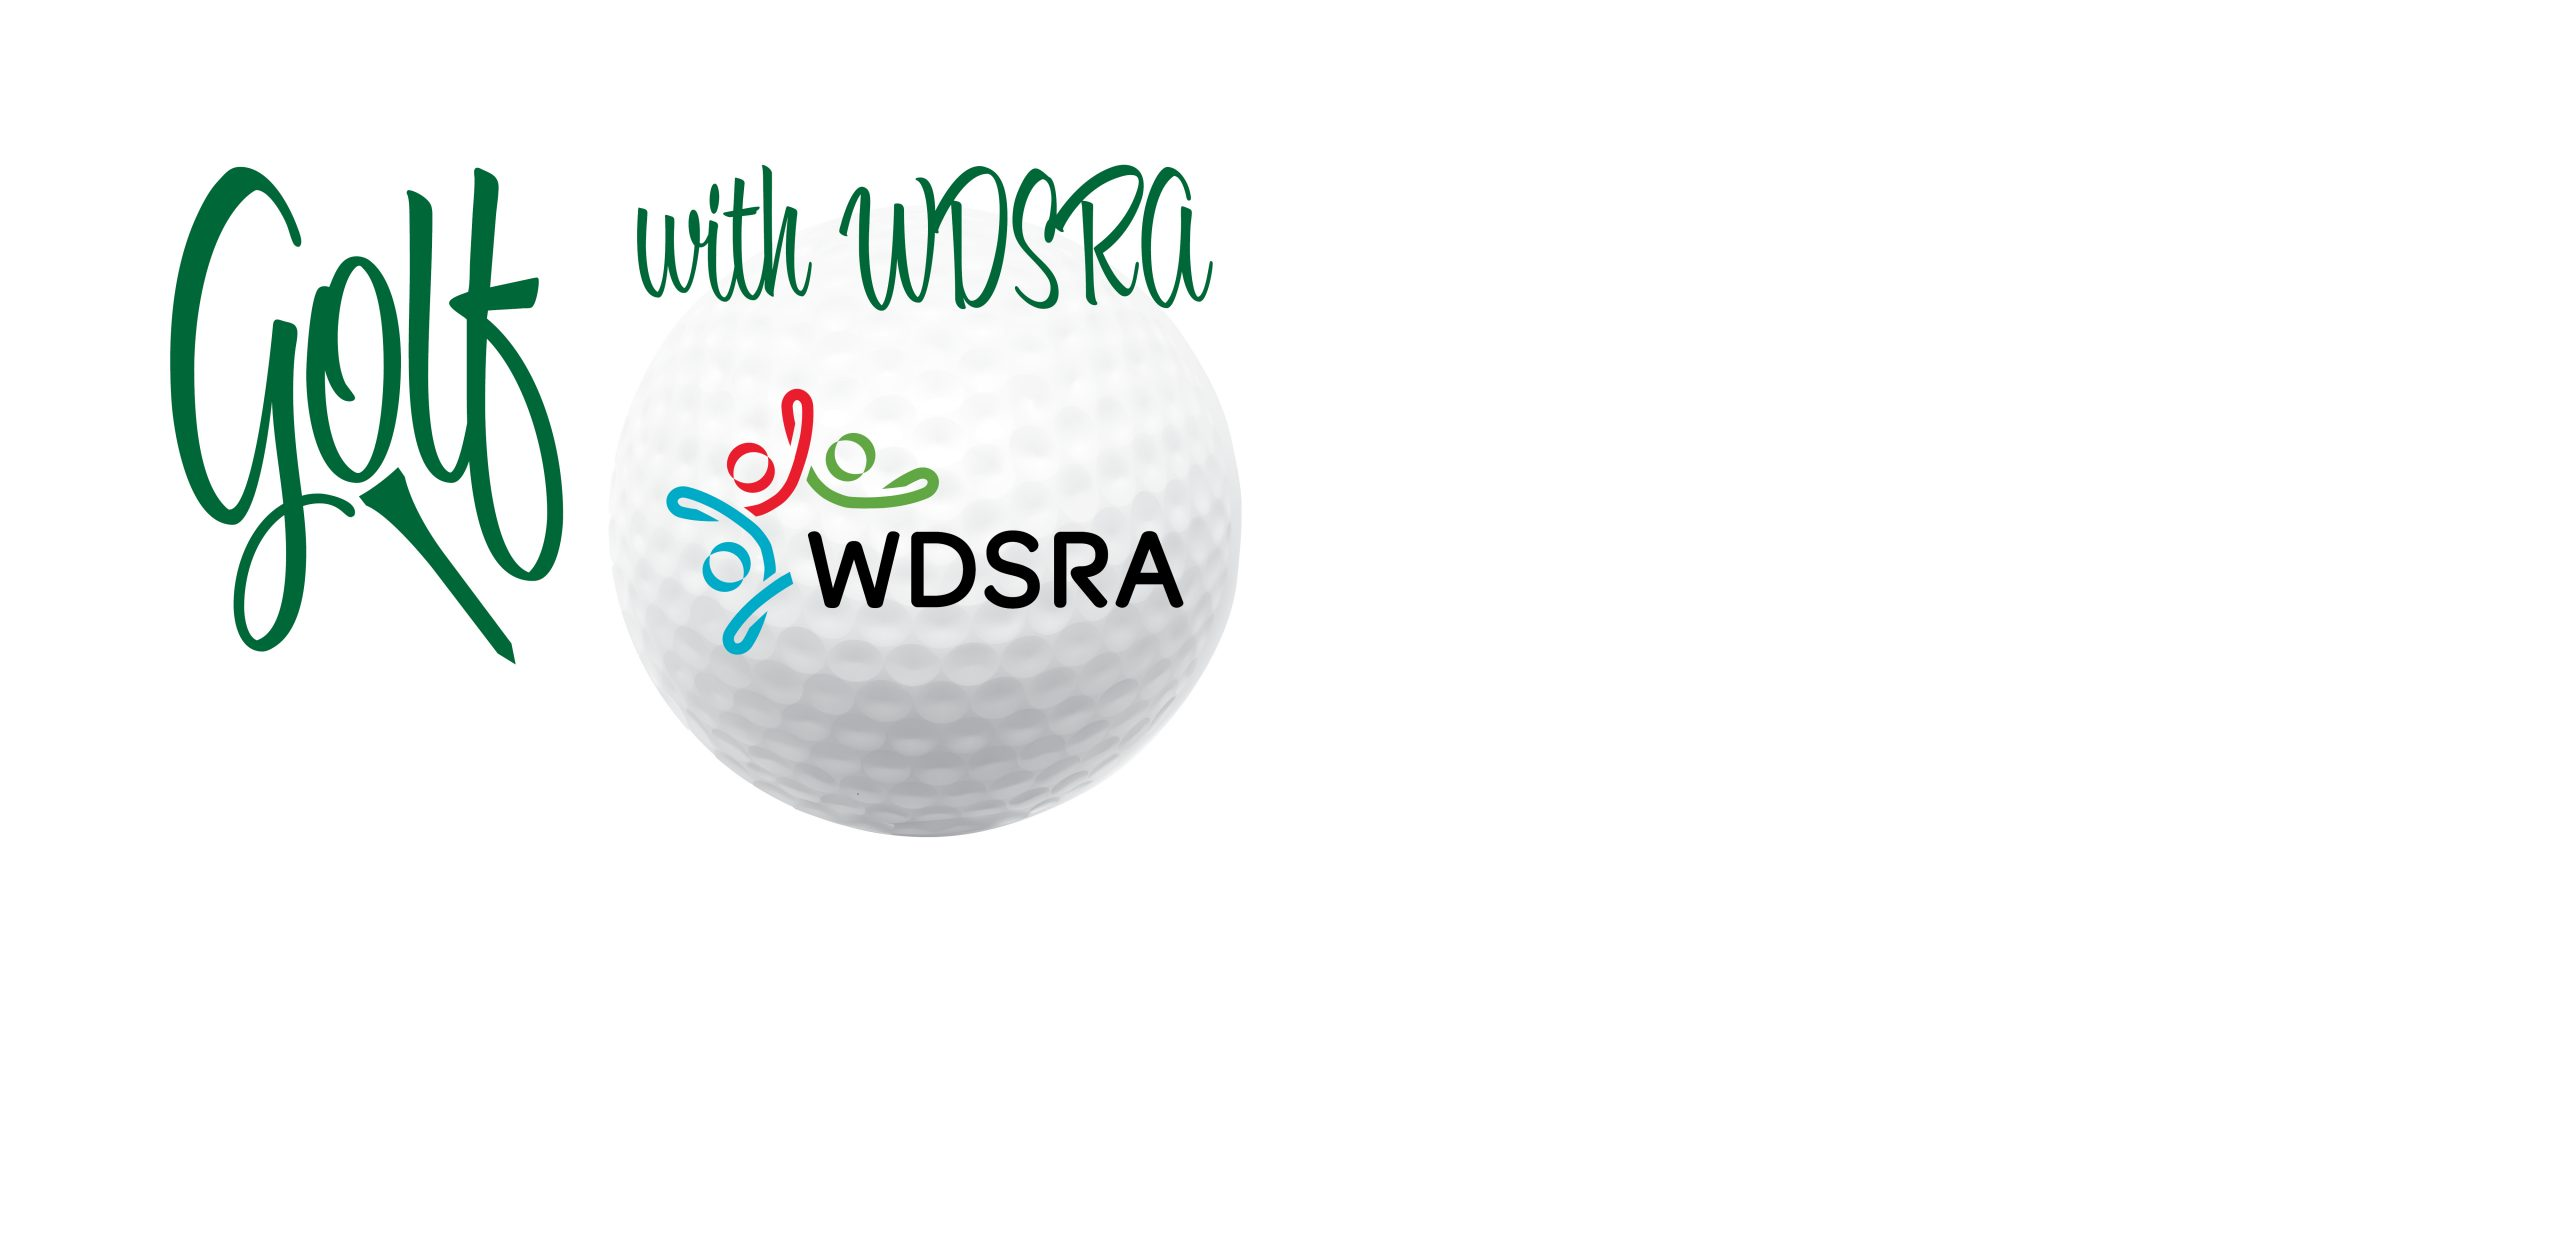 Charlie Long/WDSRA Golf Classic